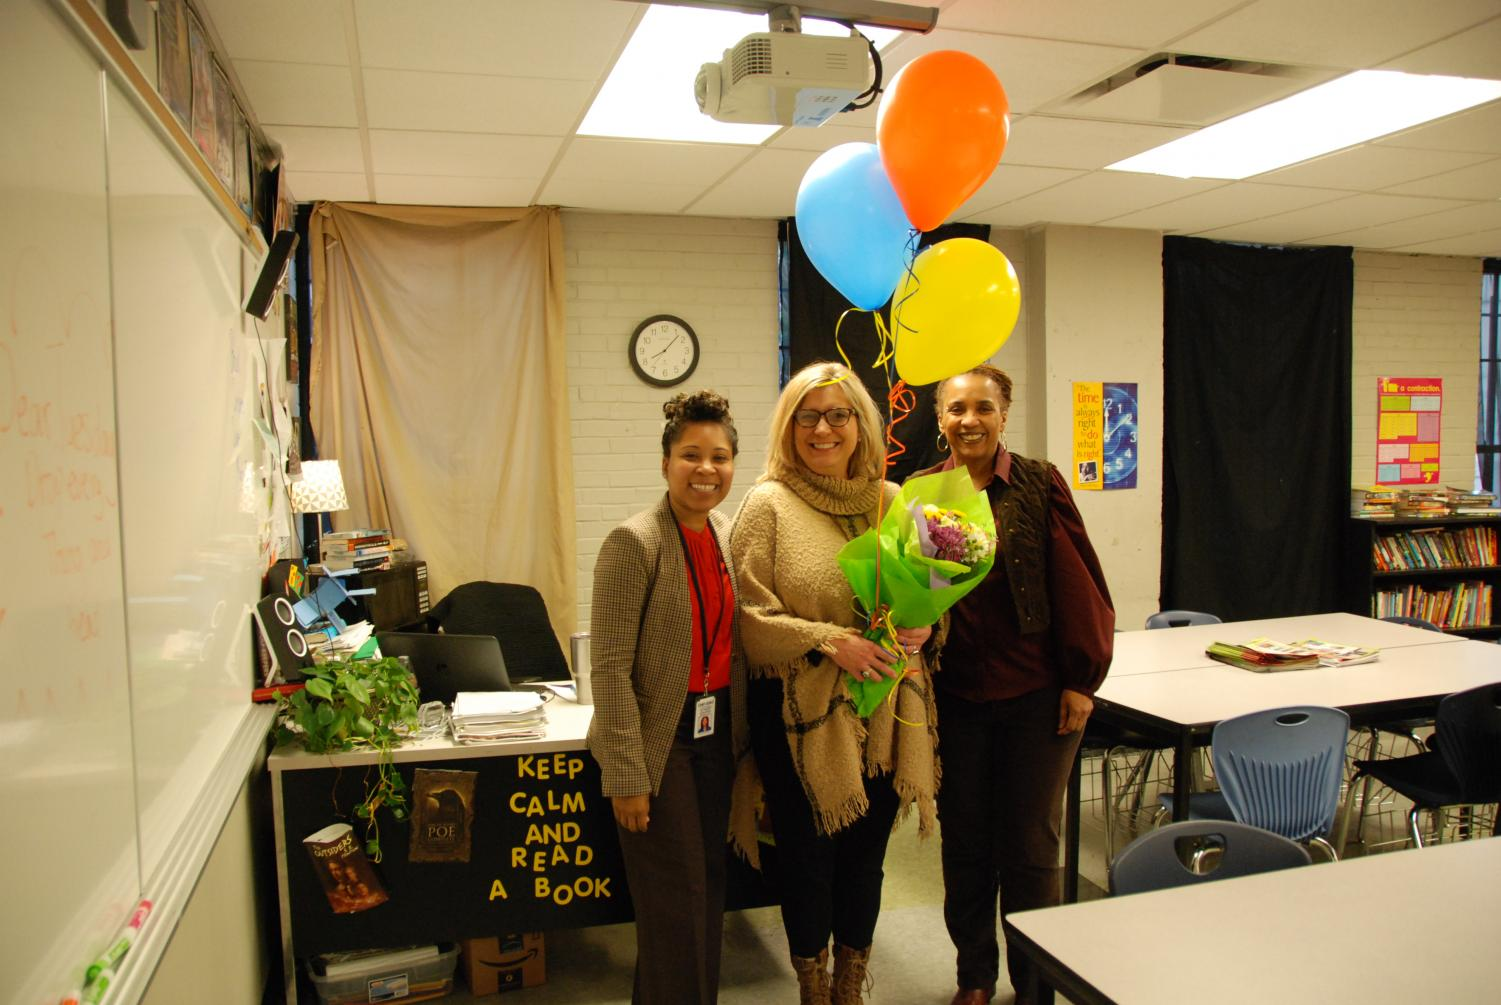 Denise Pranger, Middle School English teacher, poses with Dr. Candice Carter-Oliver, CEO of Confluence Charter Schools, and Gina Bell-Moore,  GCAA Upper Academy Principal, after being surprised with her award.